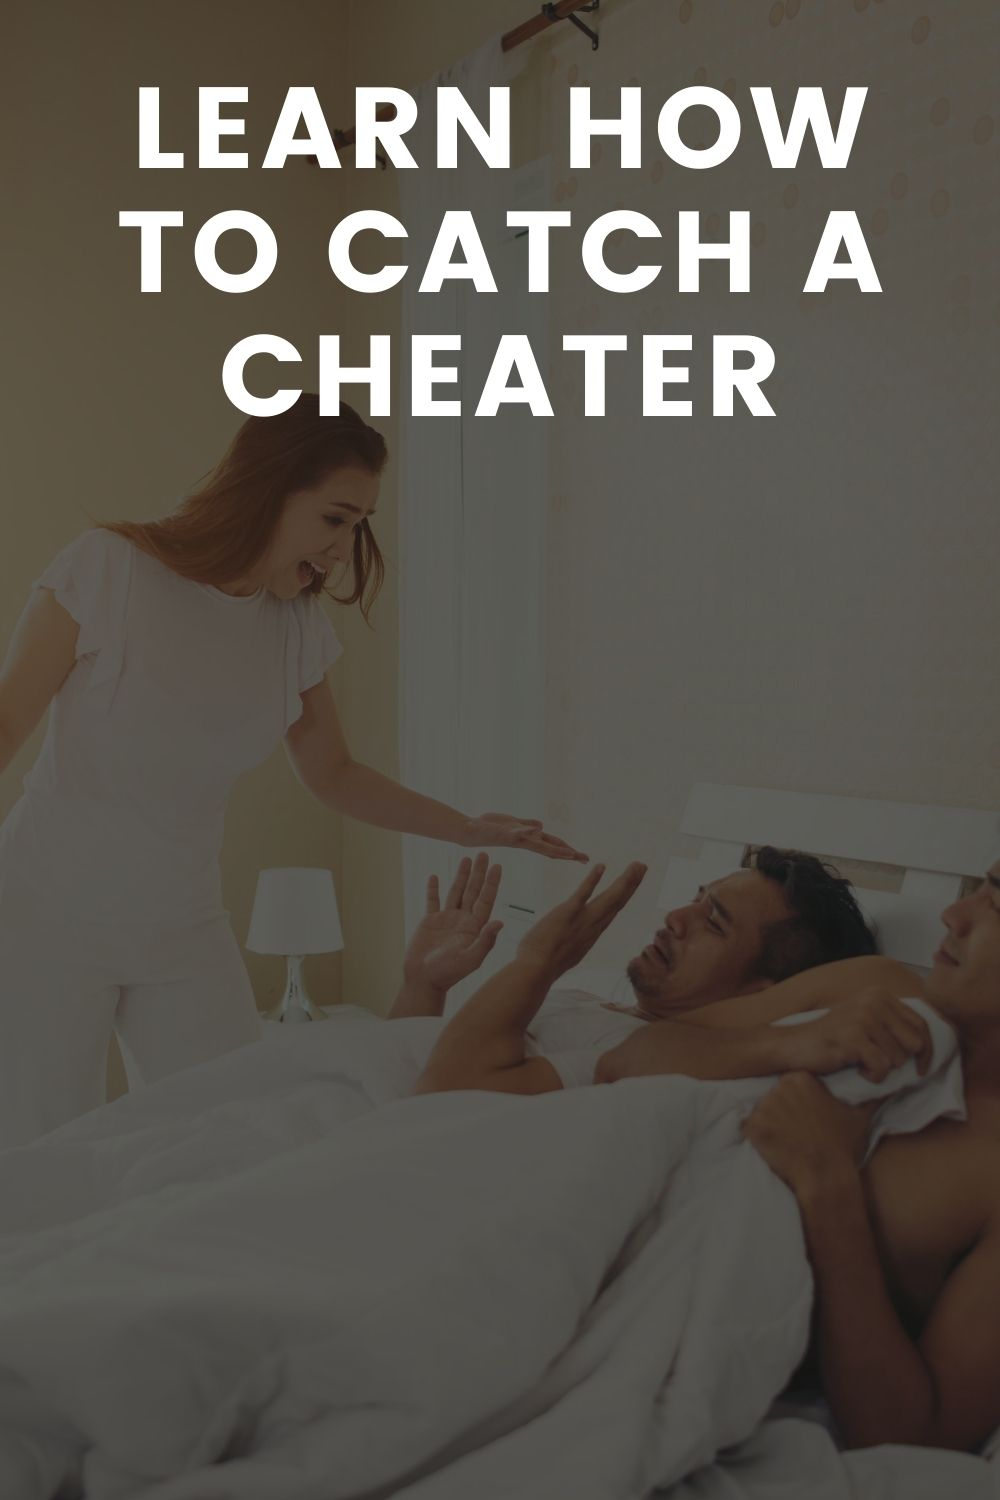 Learn How to Catch a Cheater